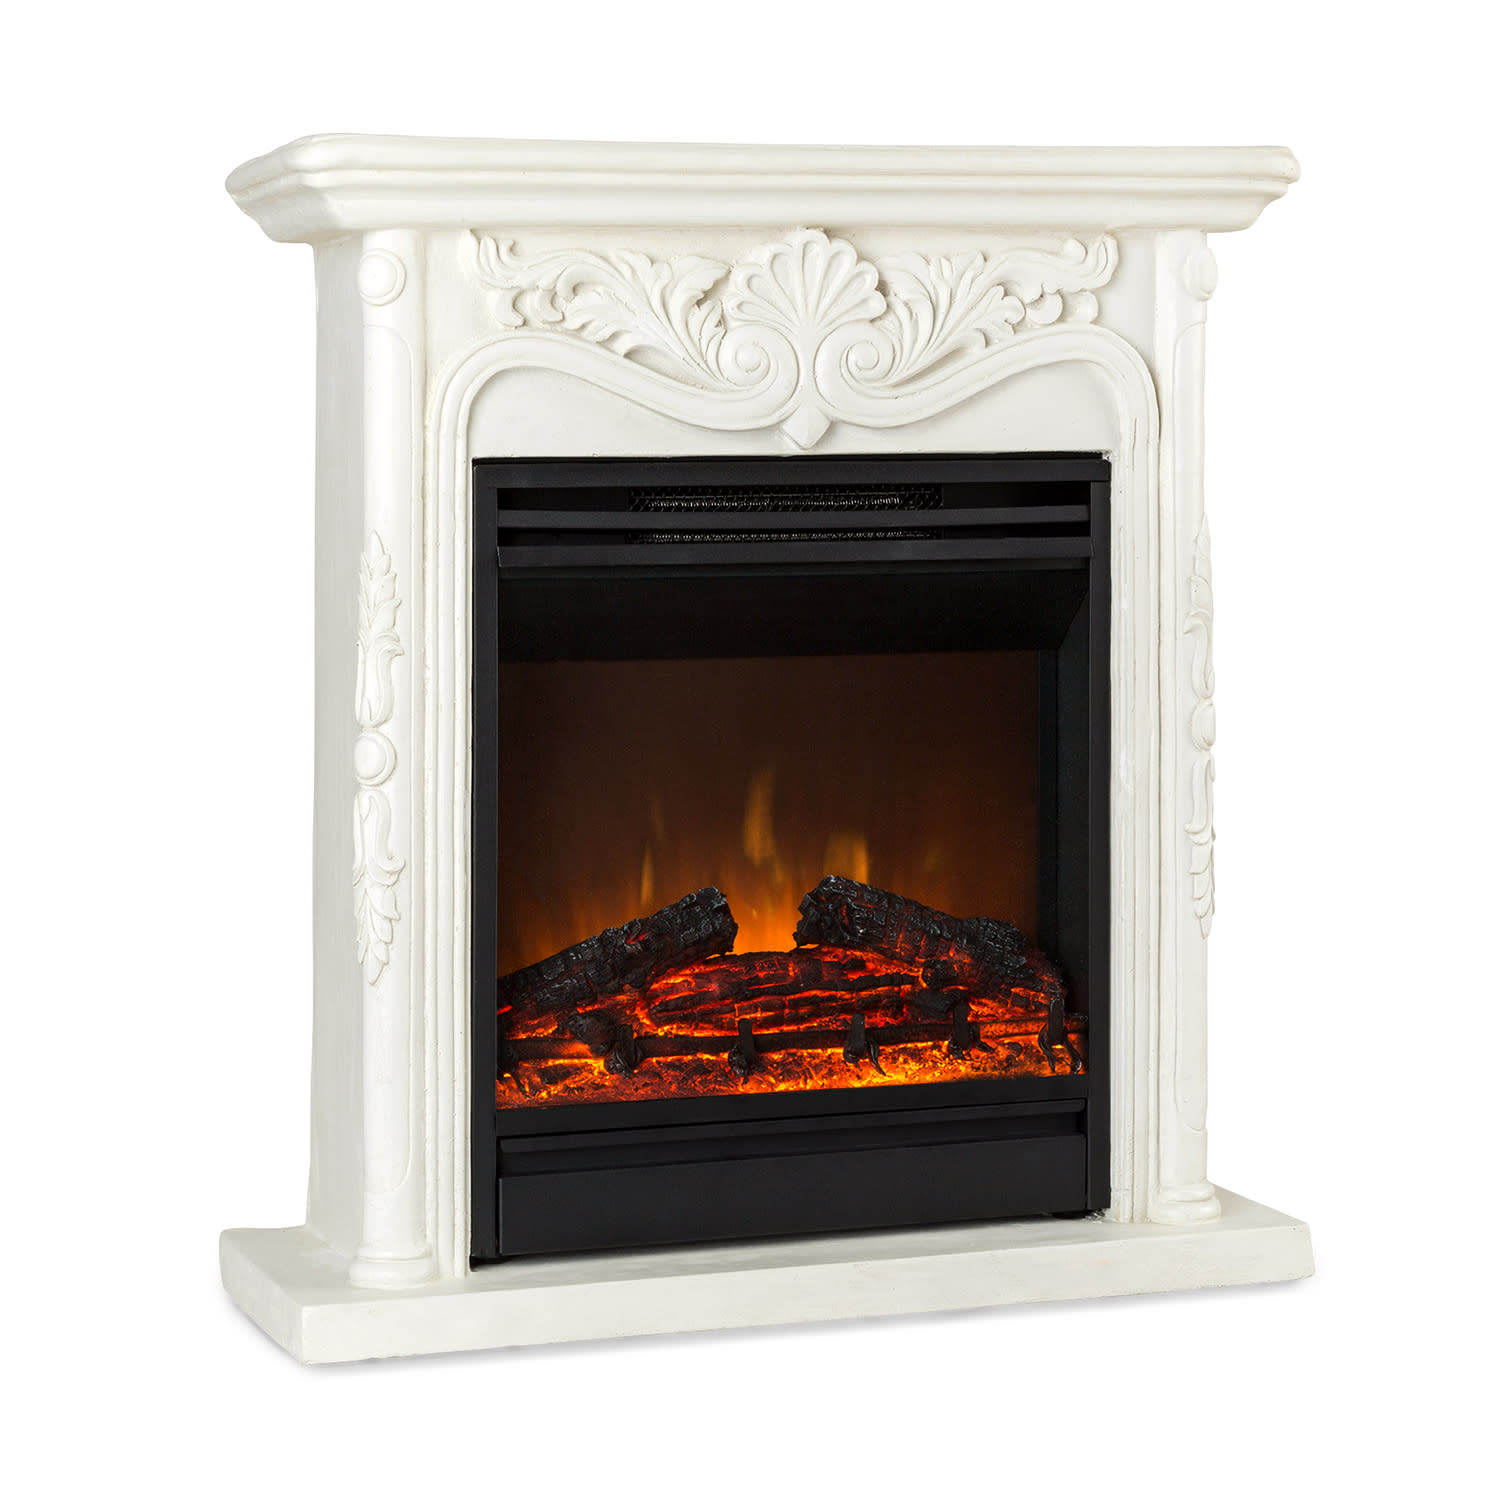 Etna Pozzolana Electric Fireplace 1800W Weekly Timer Remote Control White